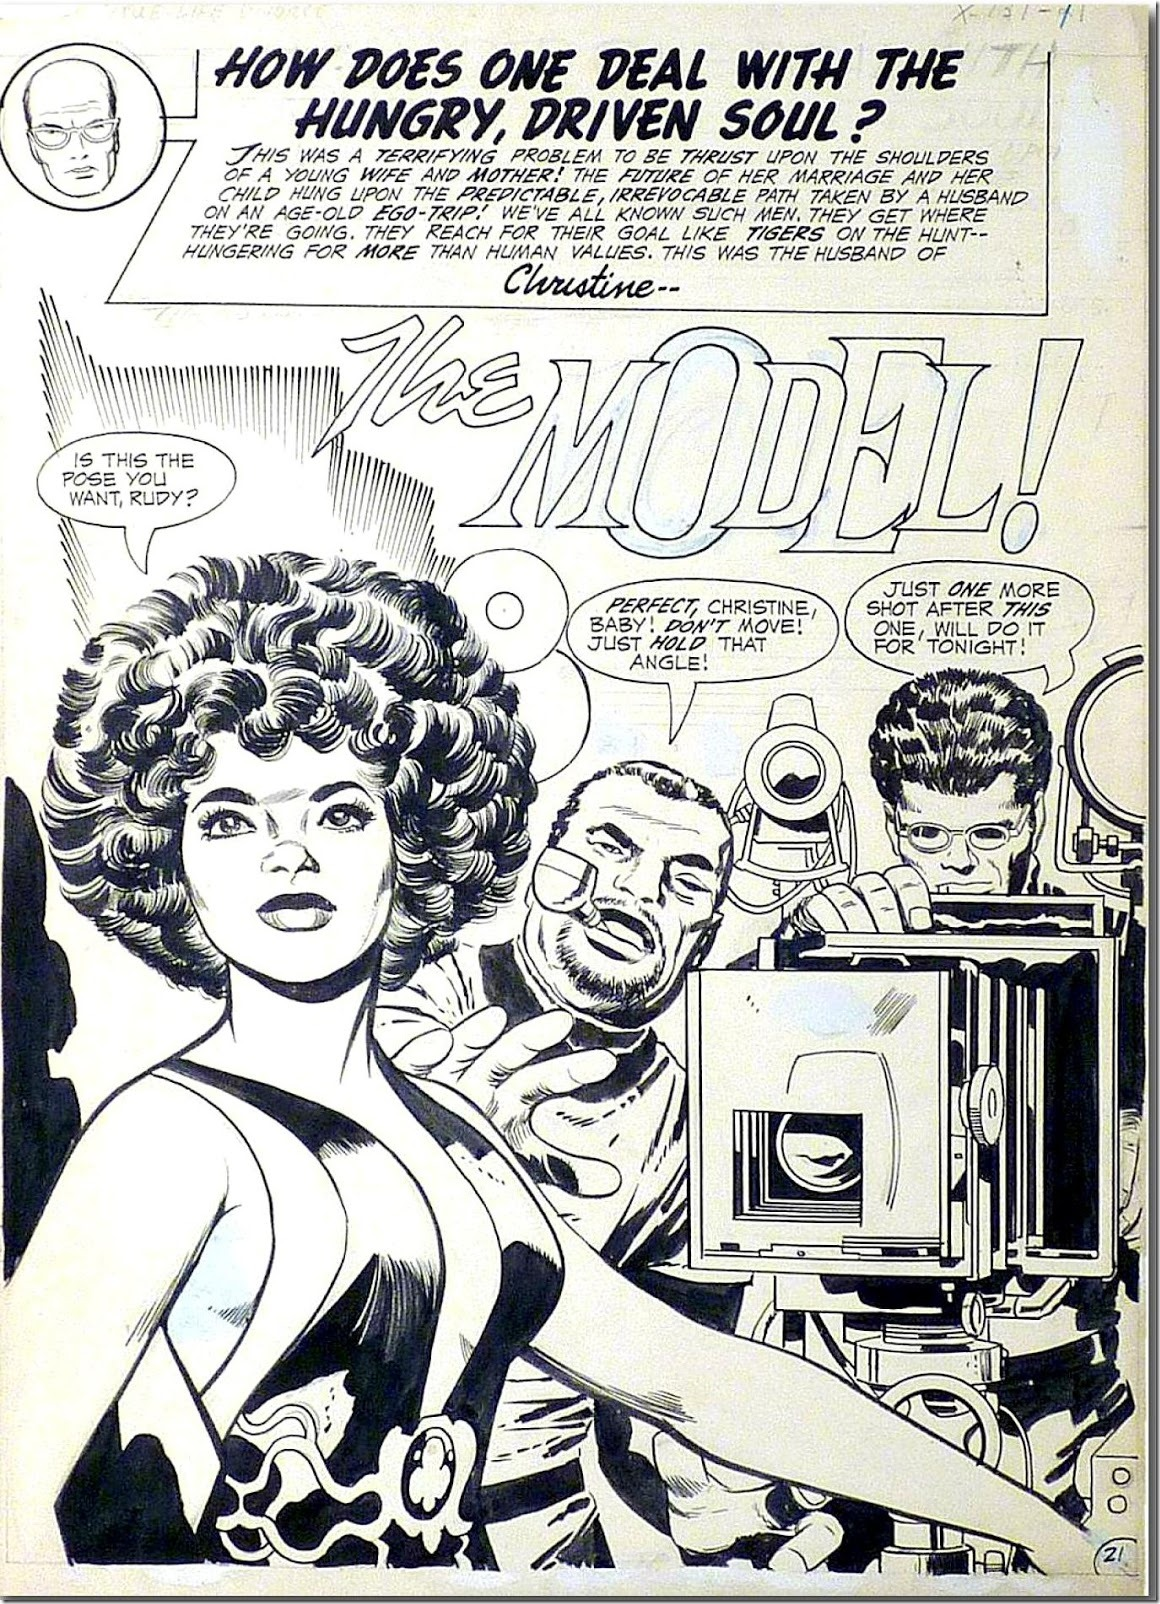 The Model by Jack Kirby from True Life Divorce #1